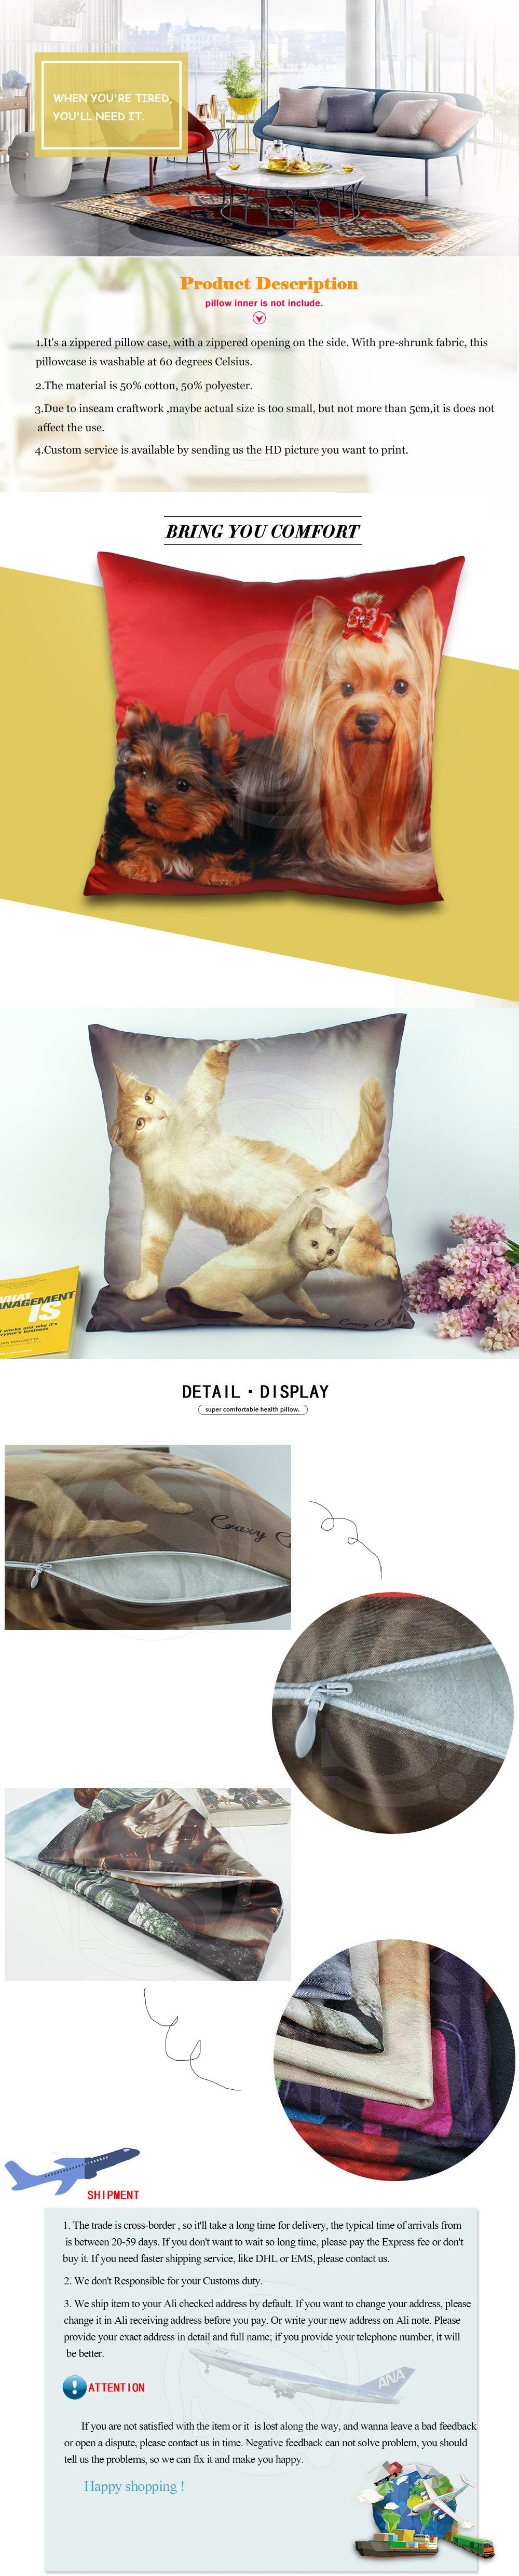 customized printing custom product detail cases linen sublimation new pillow buy